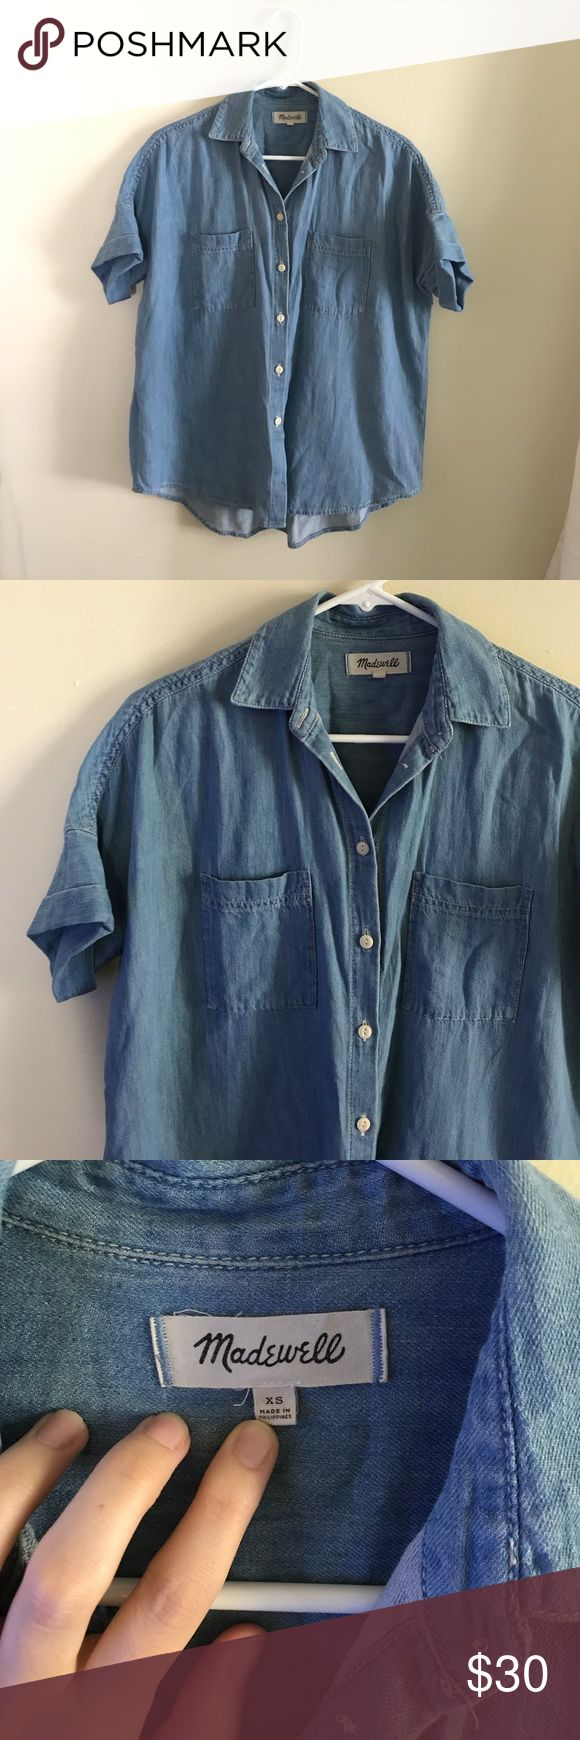 Madewell Indigo Courier Shirt in Kieran Wash Madewell Courier Shirt in Kieran wash. Reposhing because it was just too big for me! In great condition, no stains that I can tell. A couple of tiny snags in the fabric (see photo). Size XS, but definitely a generous oversized fit. Sad that it's too big for me because it's such a cute top! Price firm on this one, although I may be willing to go a *bit* lower. Madewell Tops Button Down Shirts